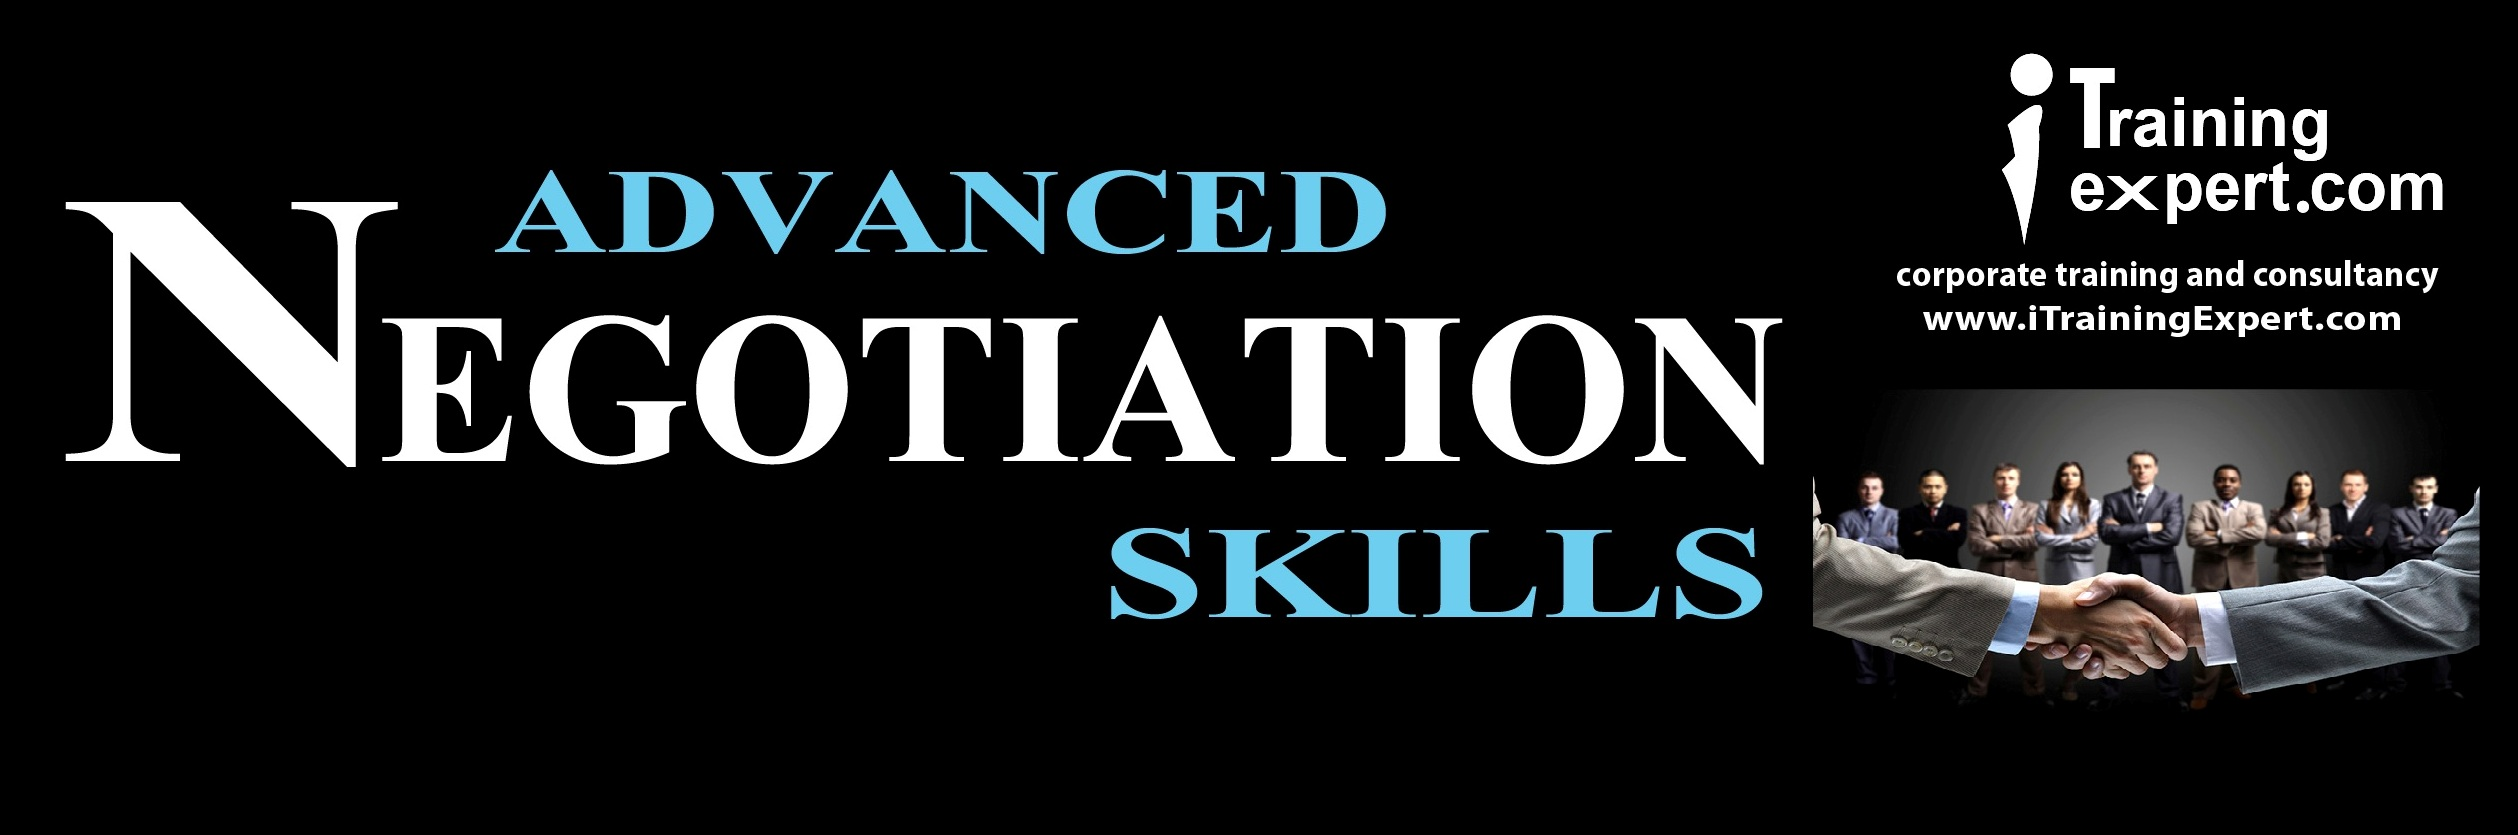 Advanced Effective Negotiation Skills Training Course In. Certificate For Medical Billing And Coding. What Kind Of Phone Are You Nissan Skyline R32. Verizon Arabic Channels Email Address In Html. Divorce Lawyers Nassau County. Wyeth Nutrition Products Dog Waste Management. Marquee Cinemas Southridge Wv. Rash And Fever In Toddler Jim Dandy Plumbing. Pest Control Arlington Texas